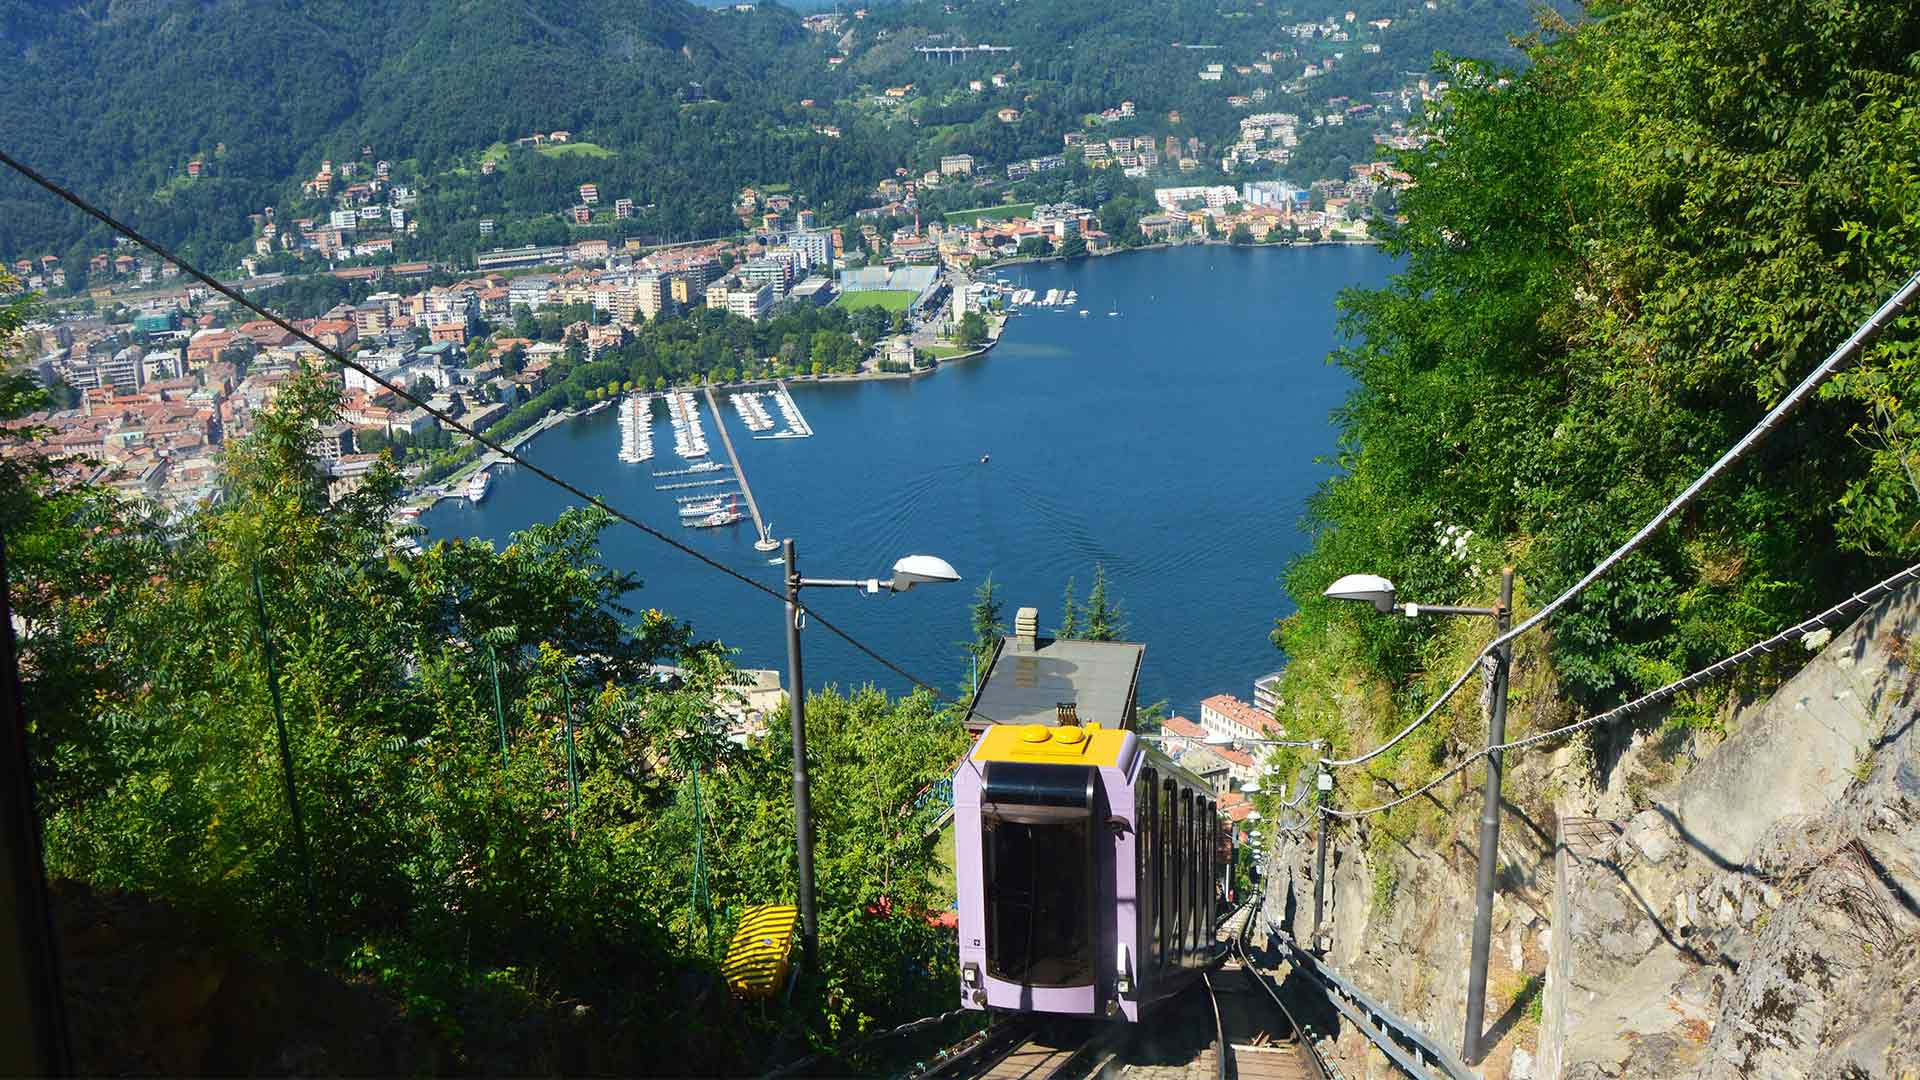 Como Cableway: Go up to Brunate and admire Lake Como from above